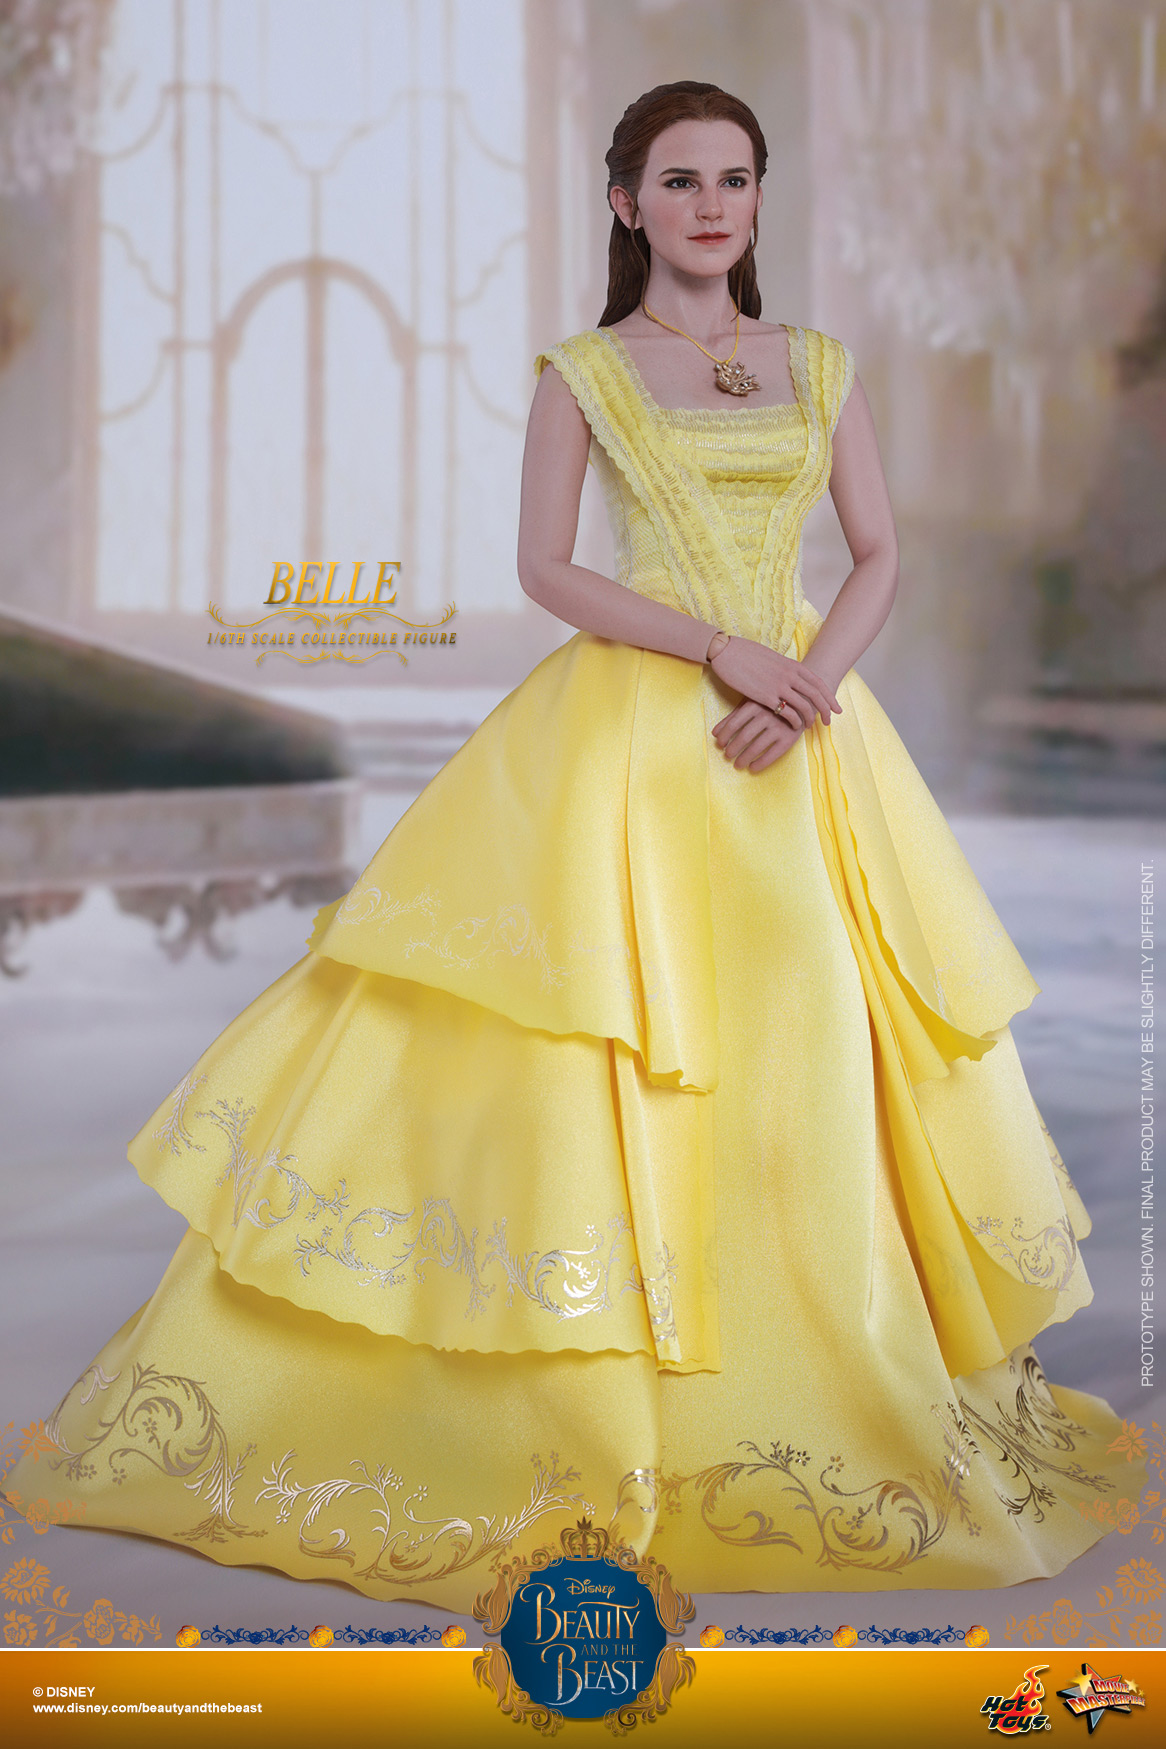 Hot-Toys---Beauty-&-the-Beast---Belle-collectible-figure_PR1